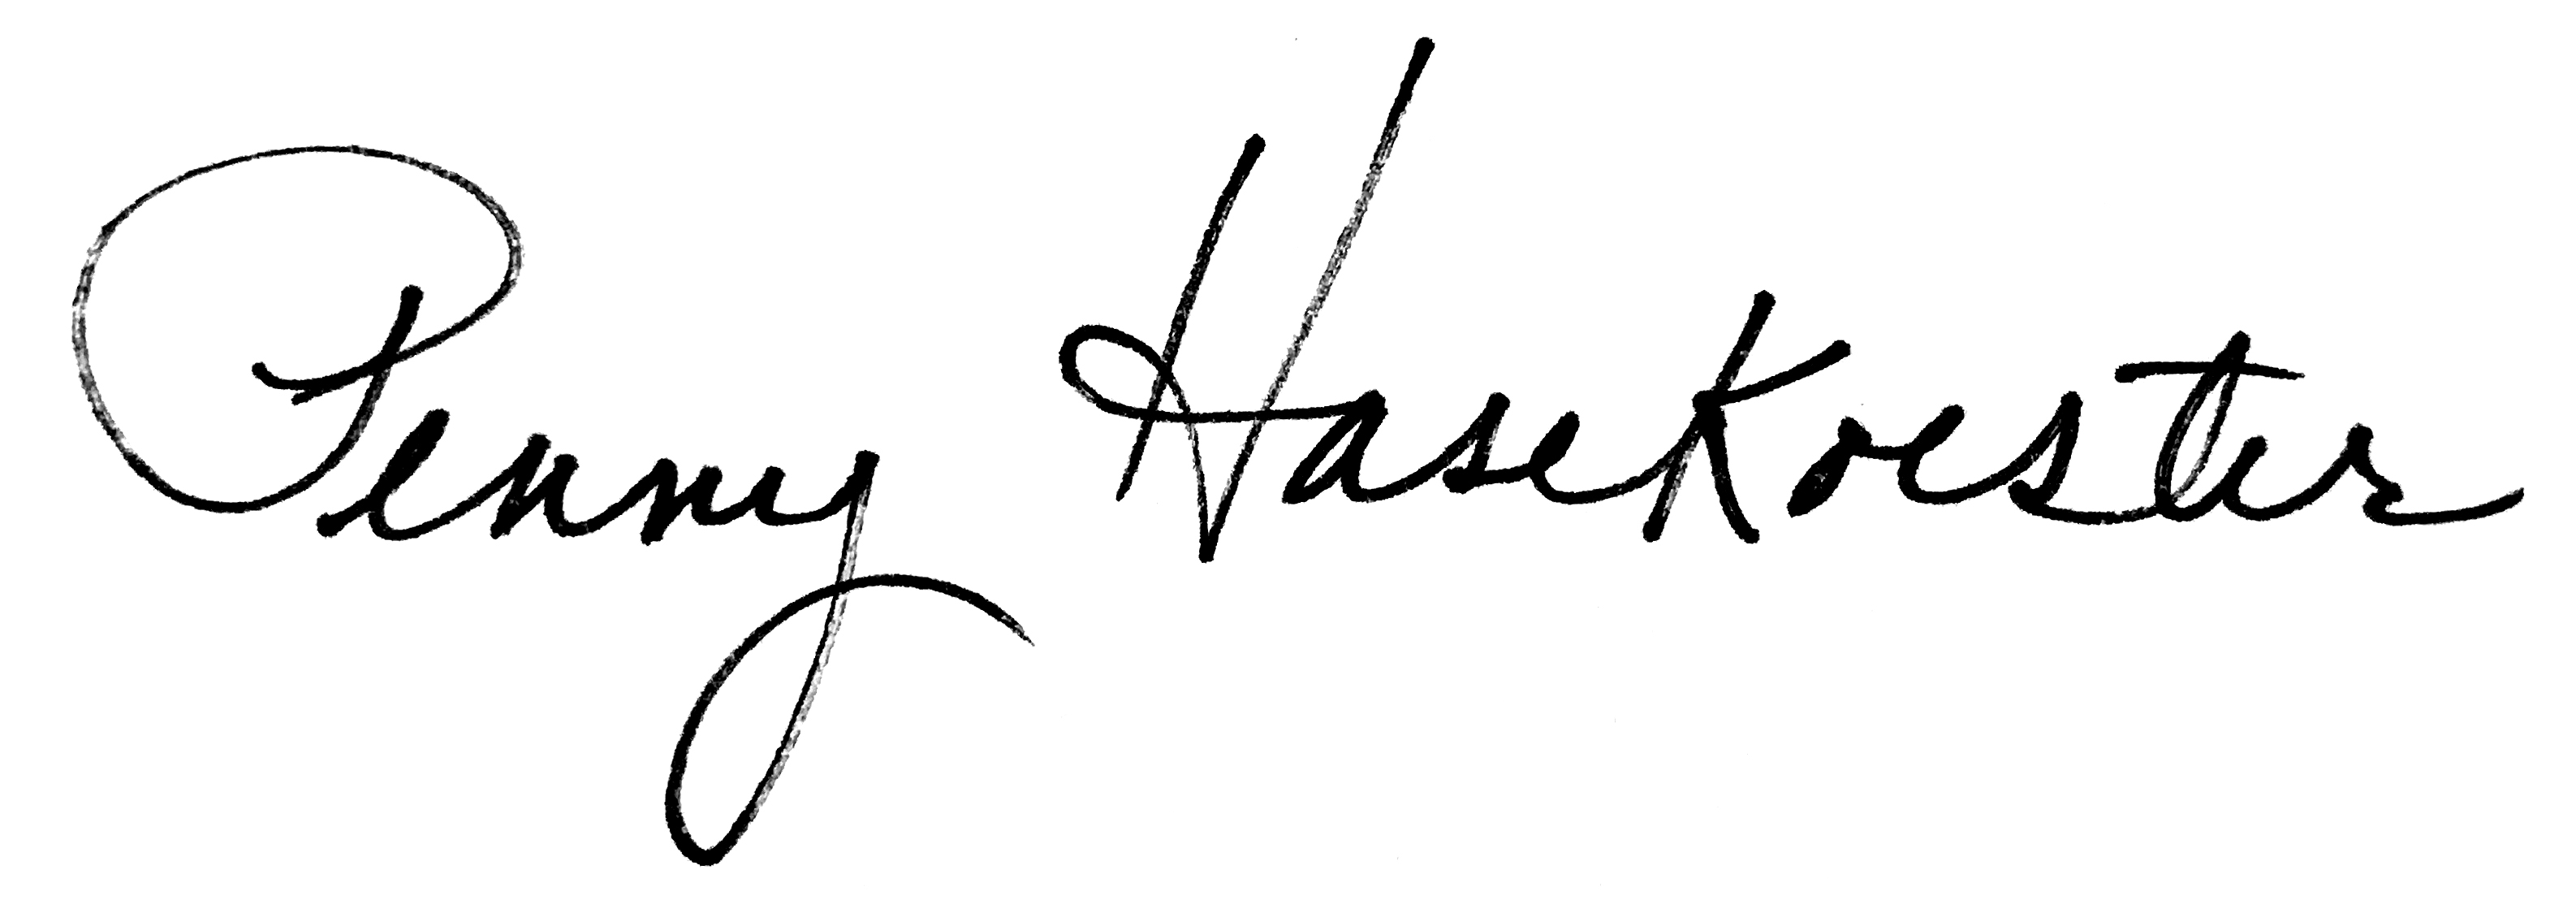 penny_signature